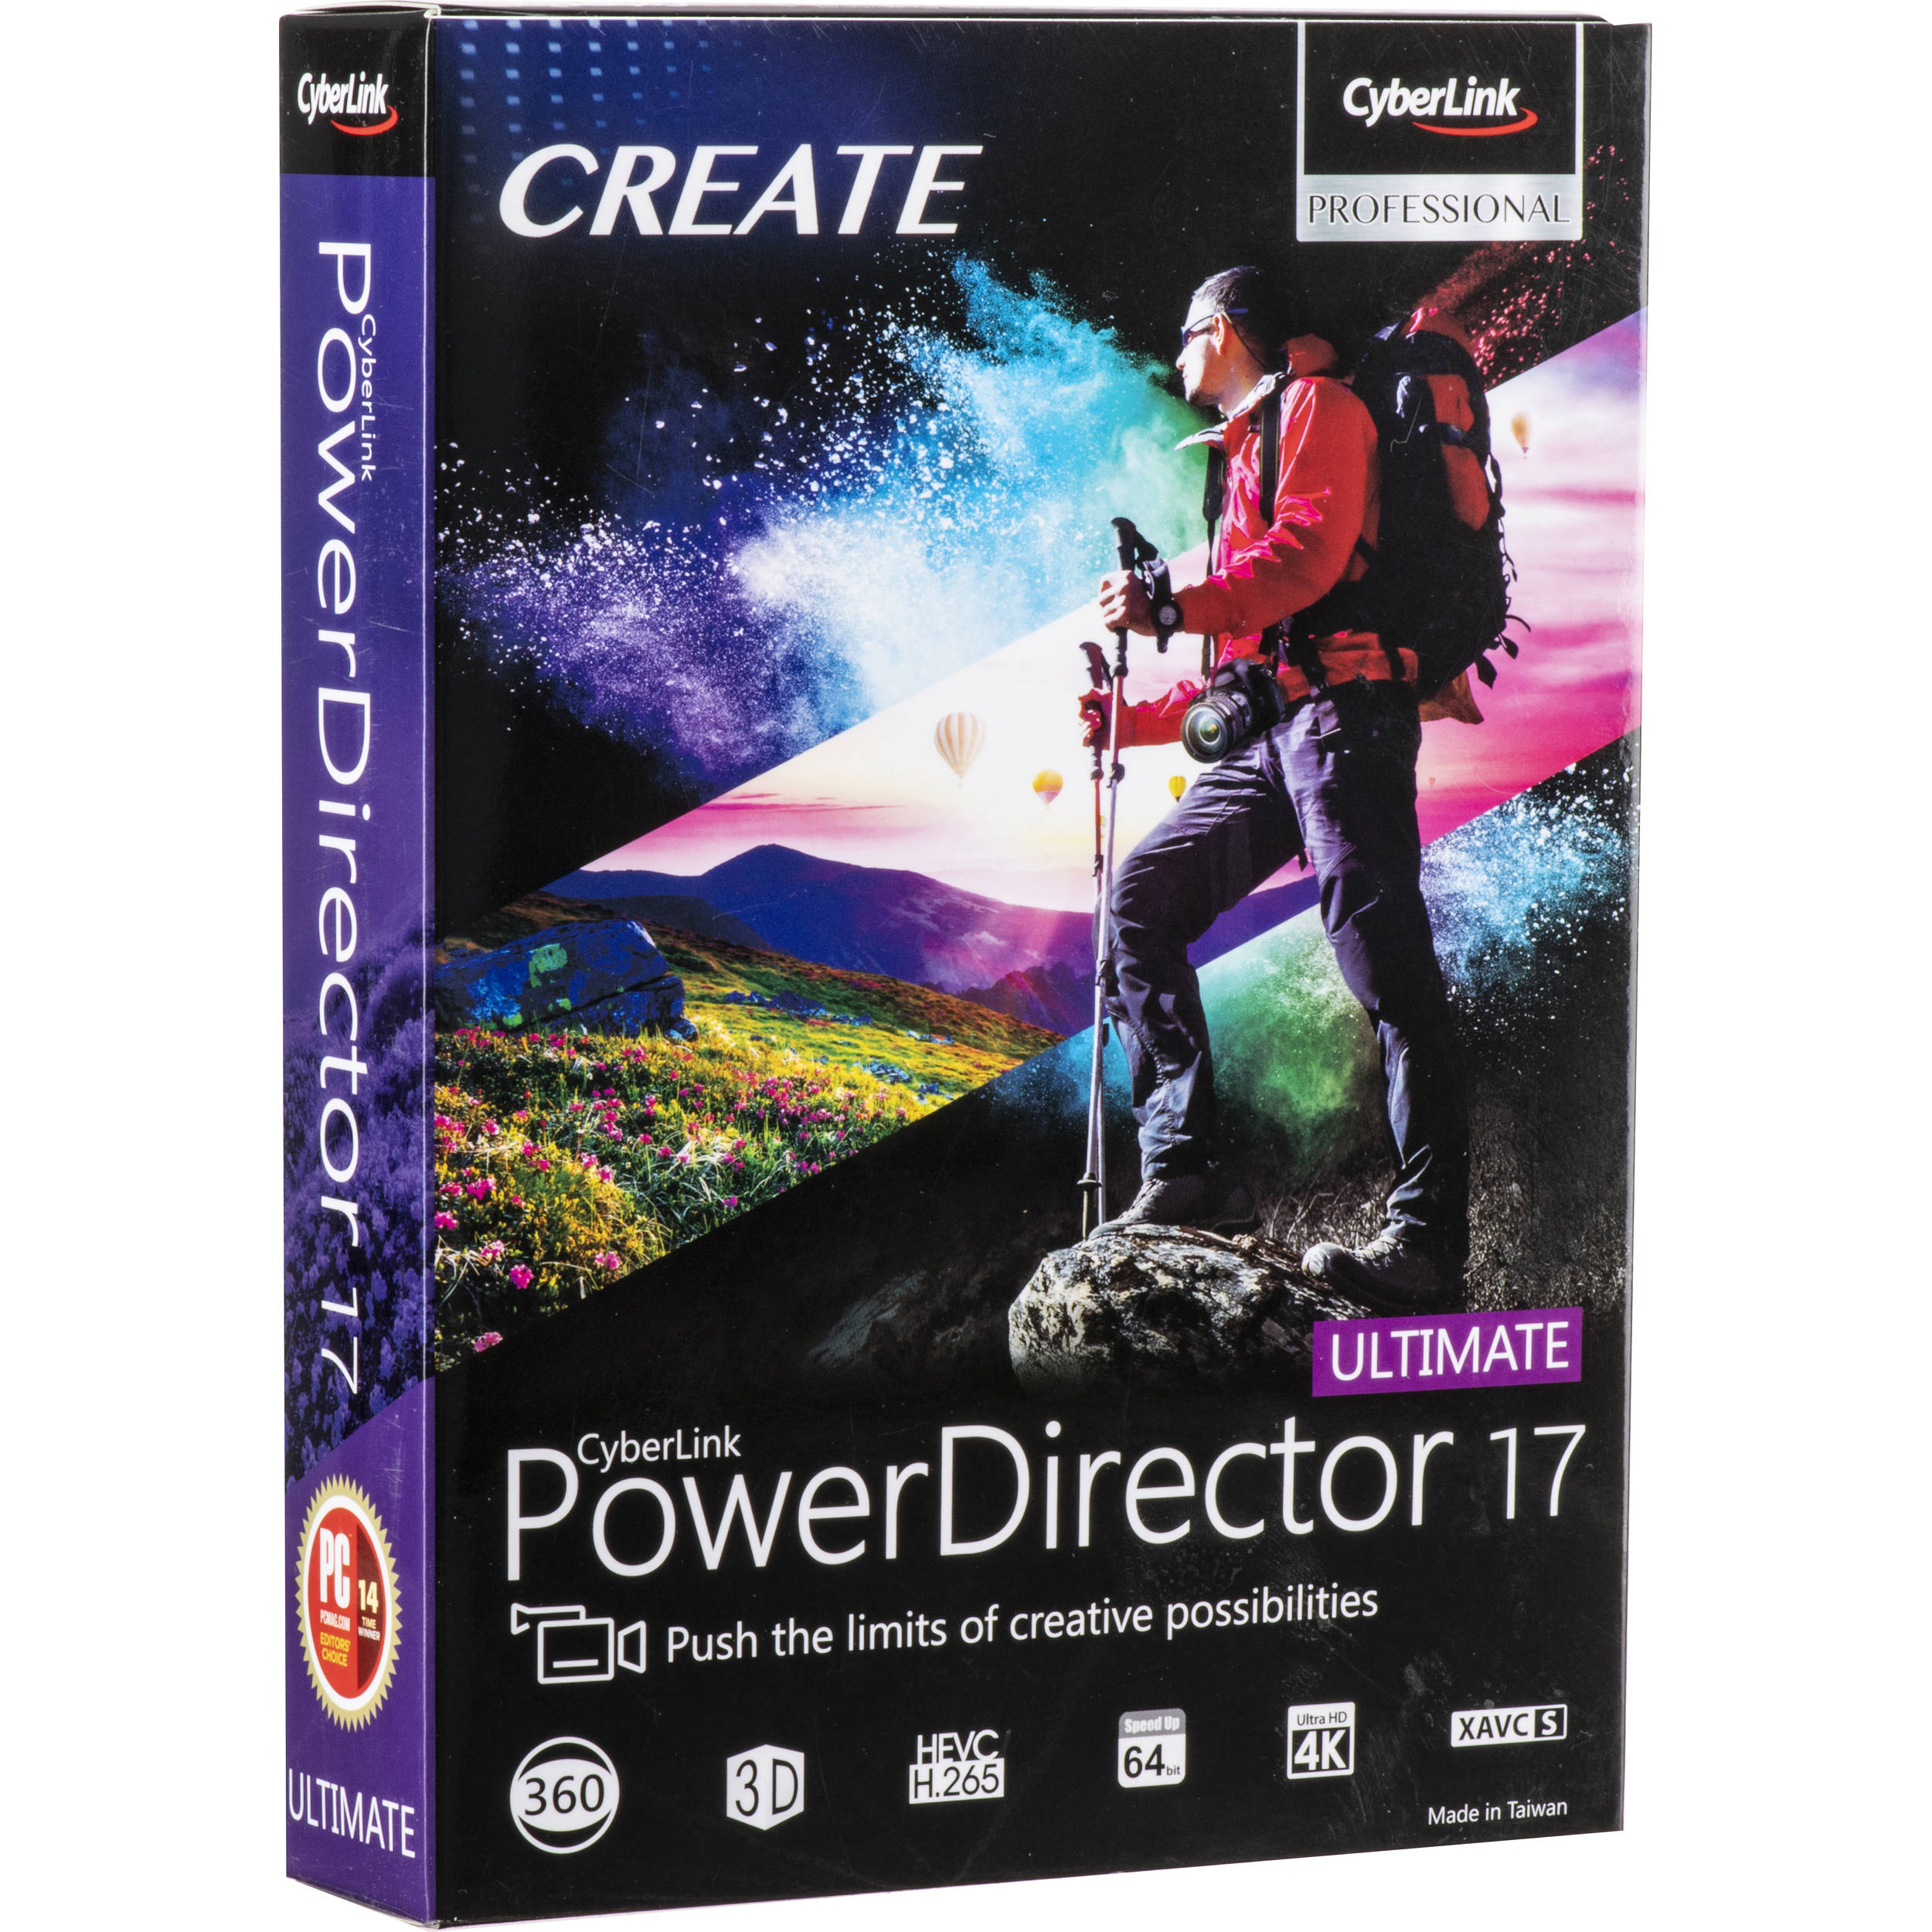 cyberlink powerdirector 17 full download